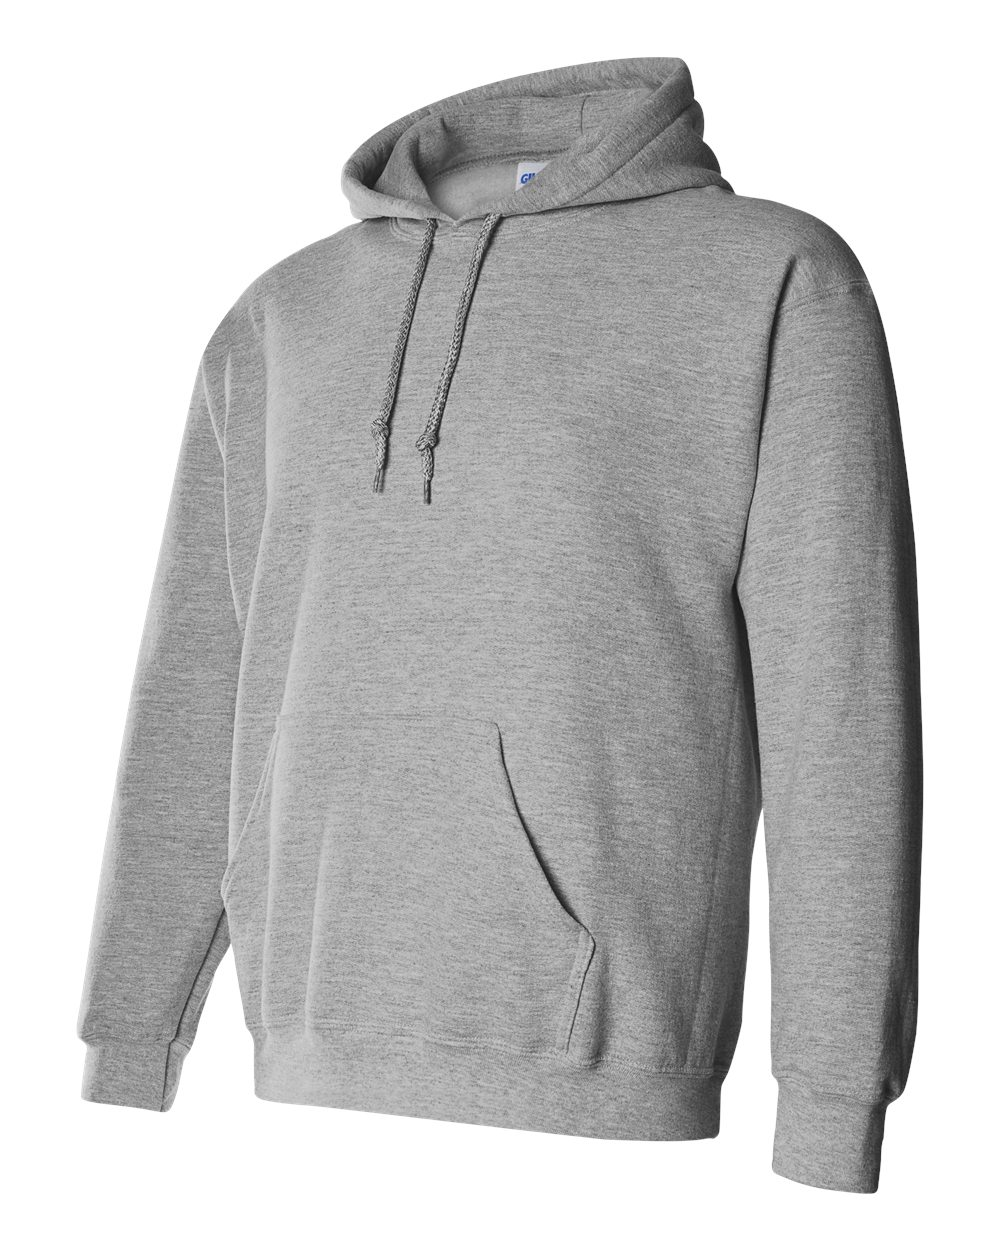 Gildan Ultra Blend Hoodie sweater GIL12500 Sports Grey